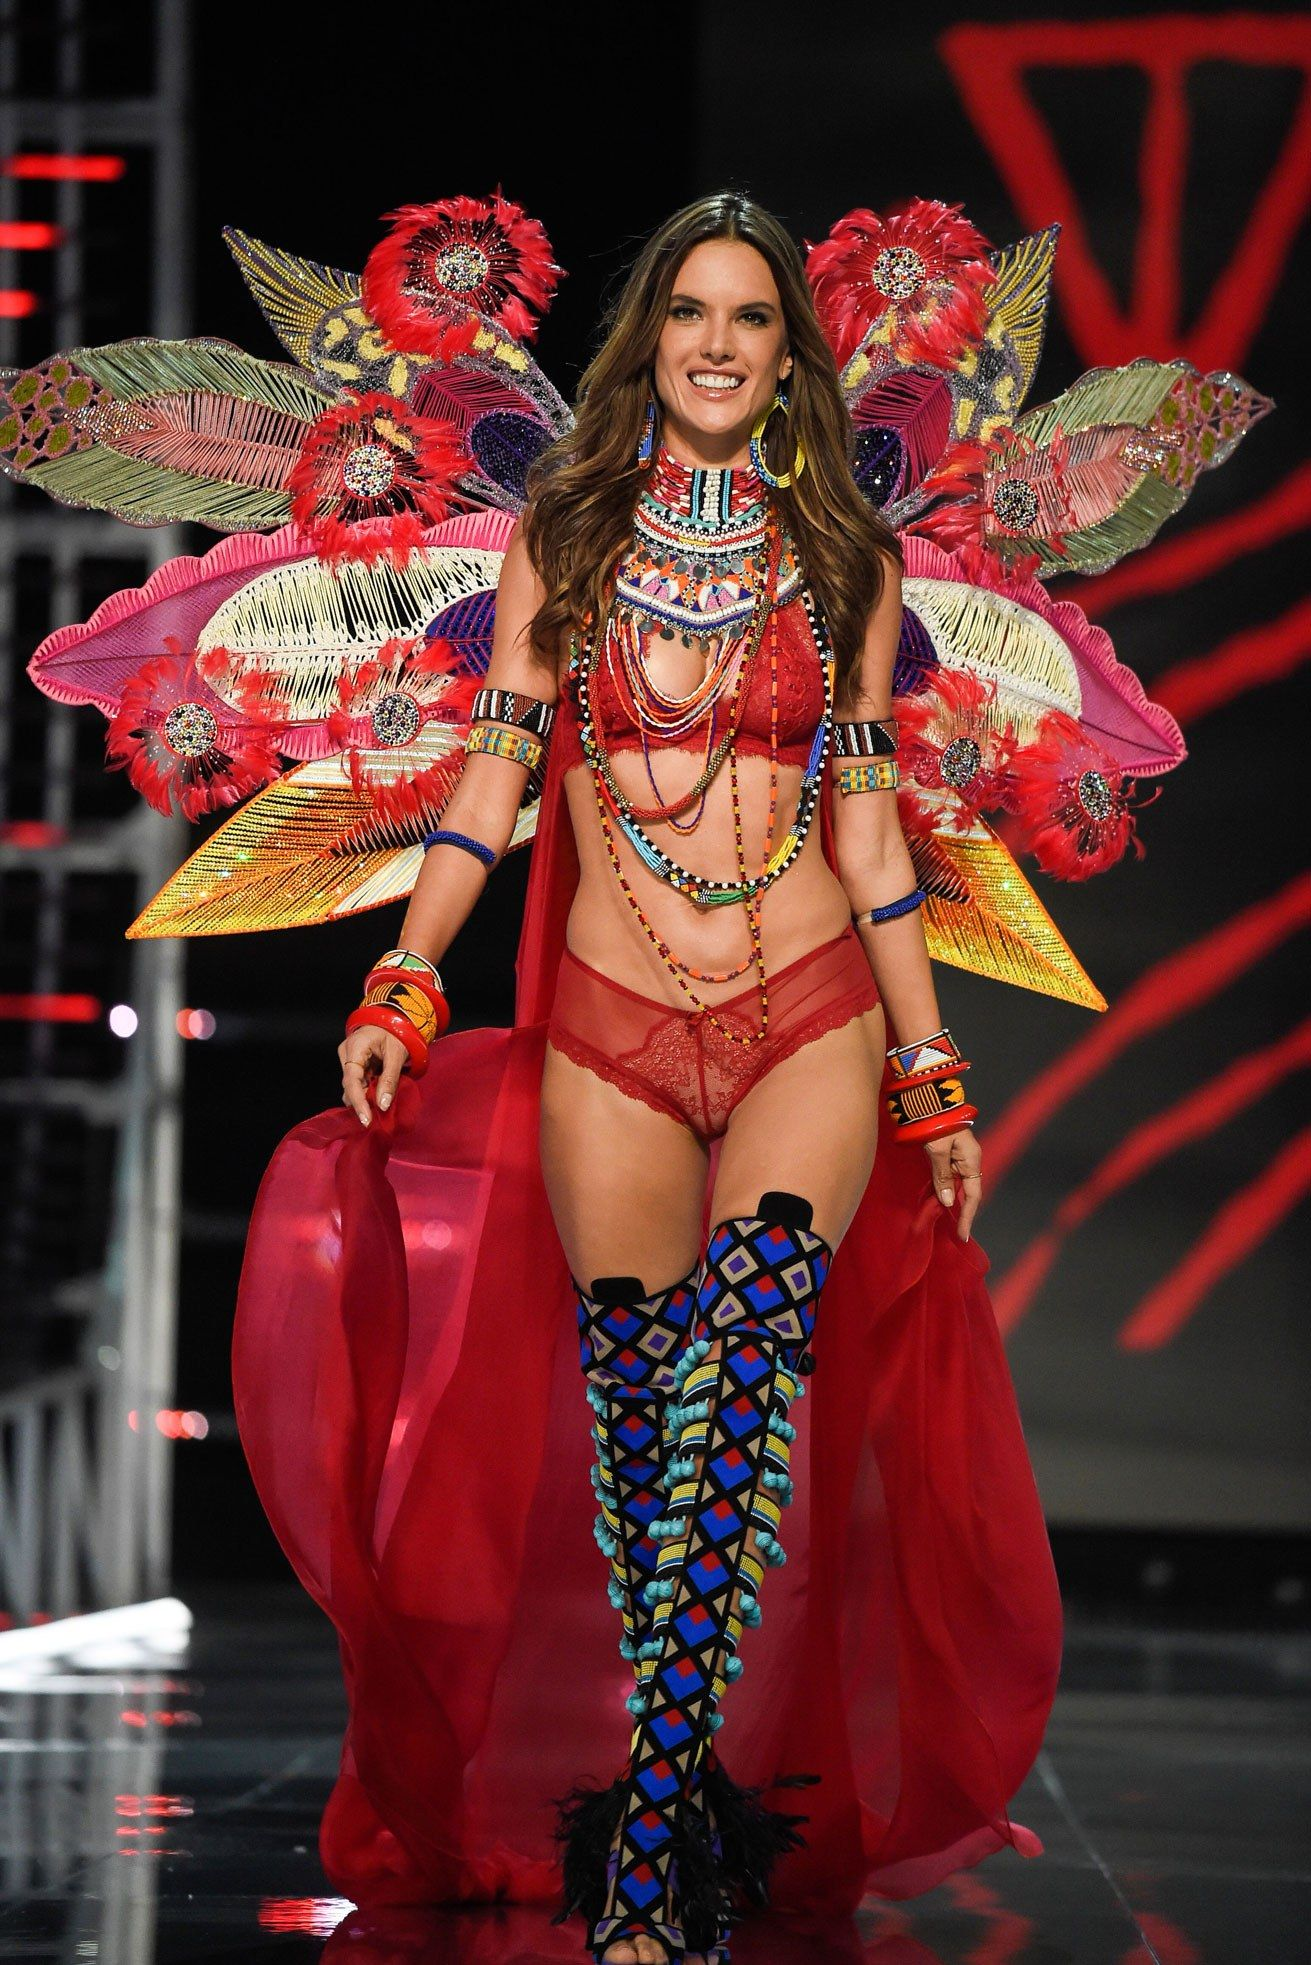 ce3655408a Retiring 17 year veteran VS Angel Alessandra Ambrosio closes the 2017 VSFS  with her last walk on the famous VS runway. Ale will be greatly missed  3